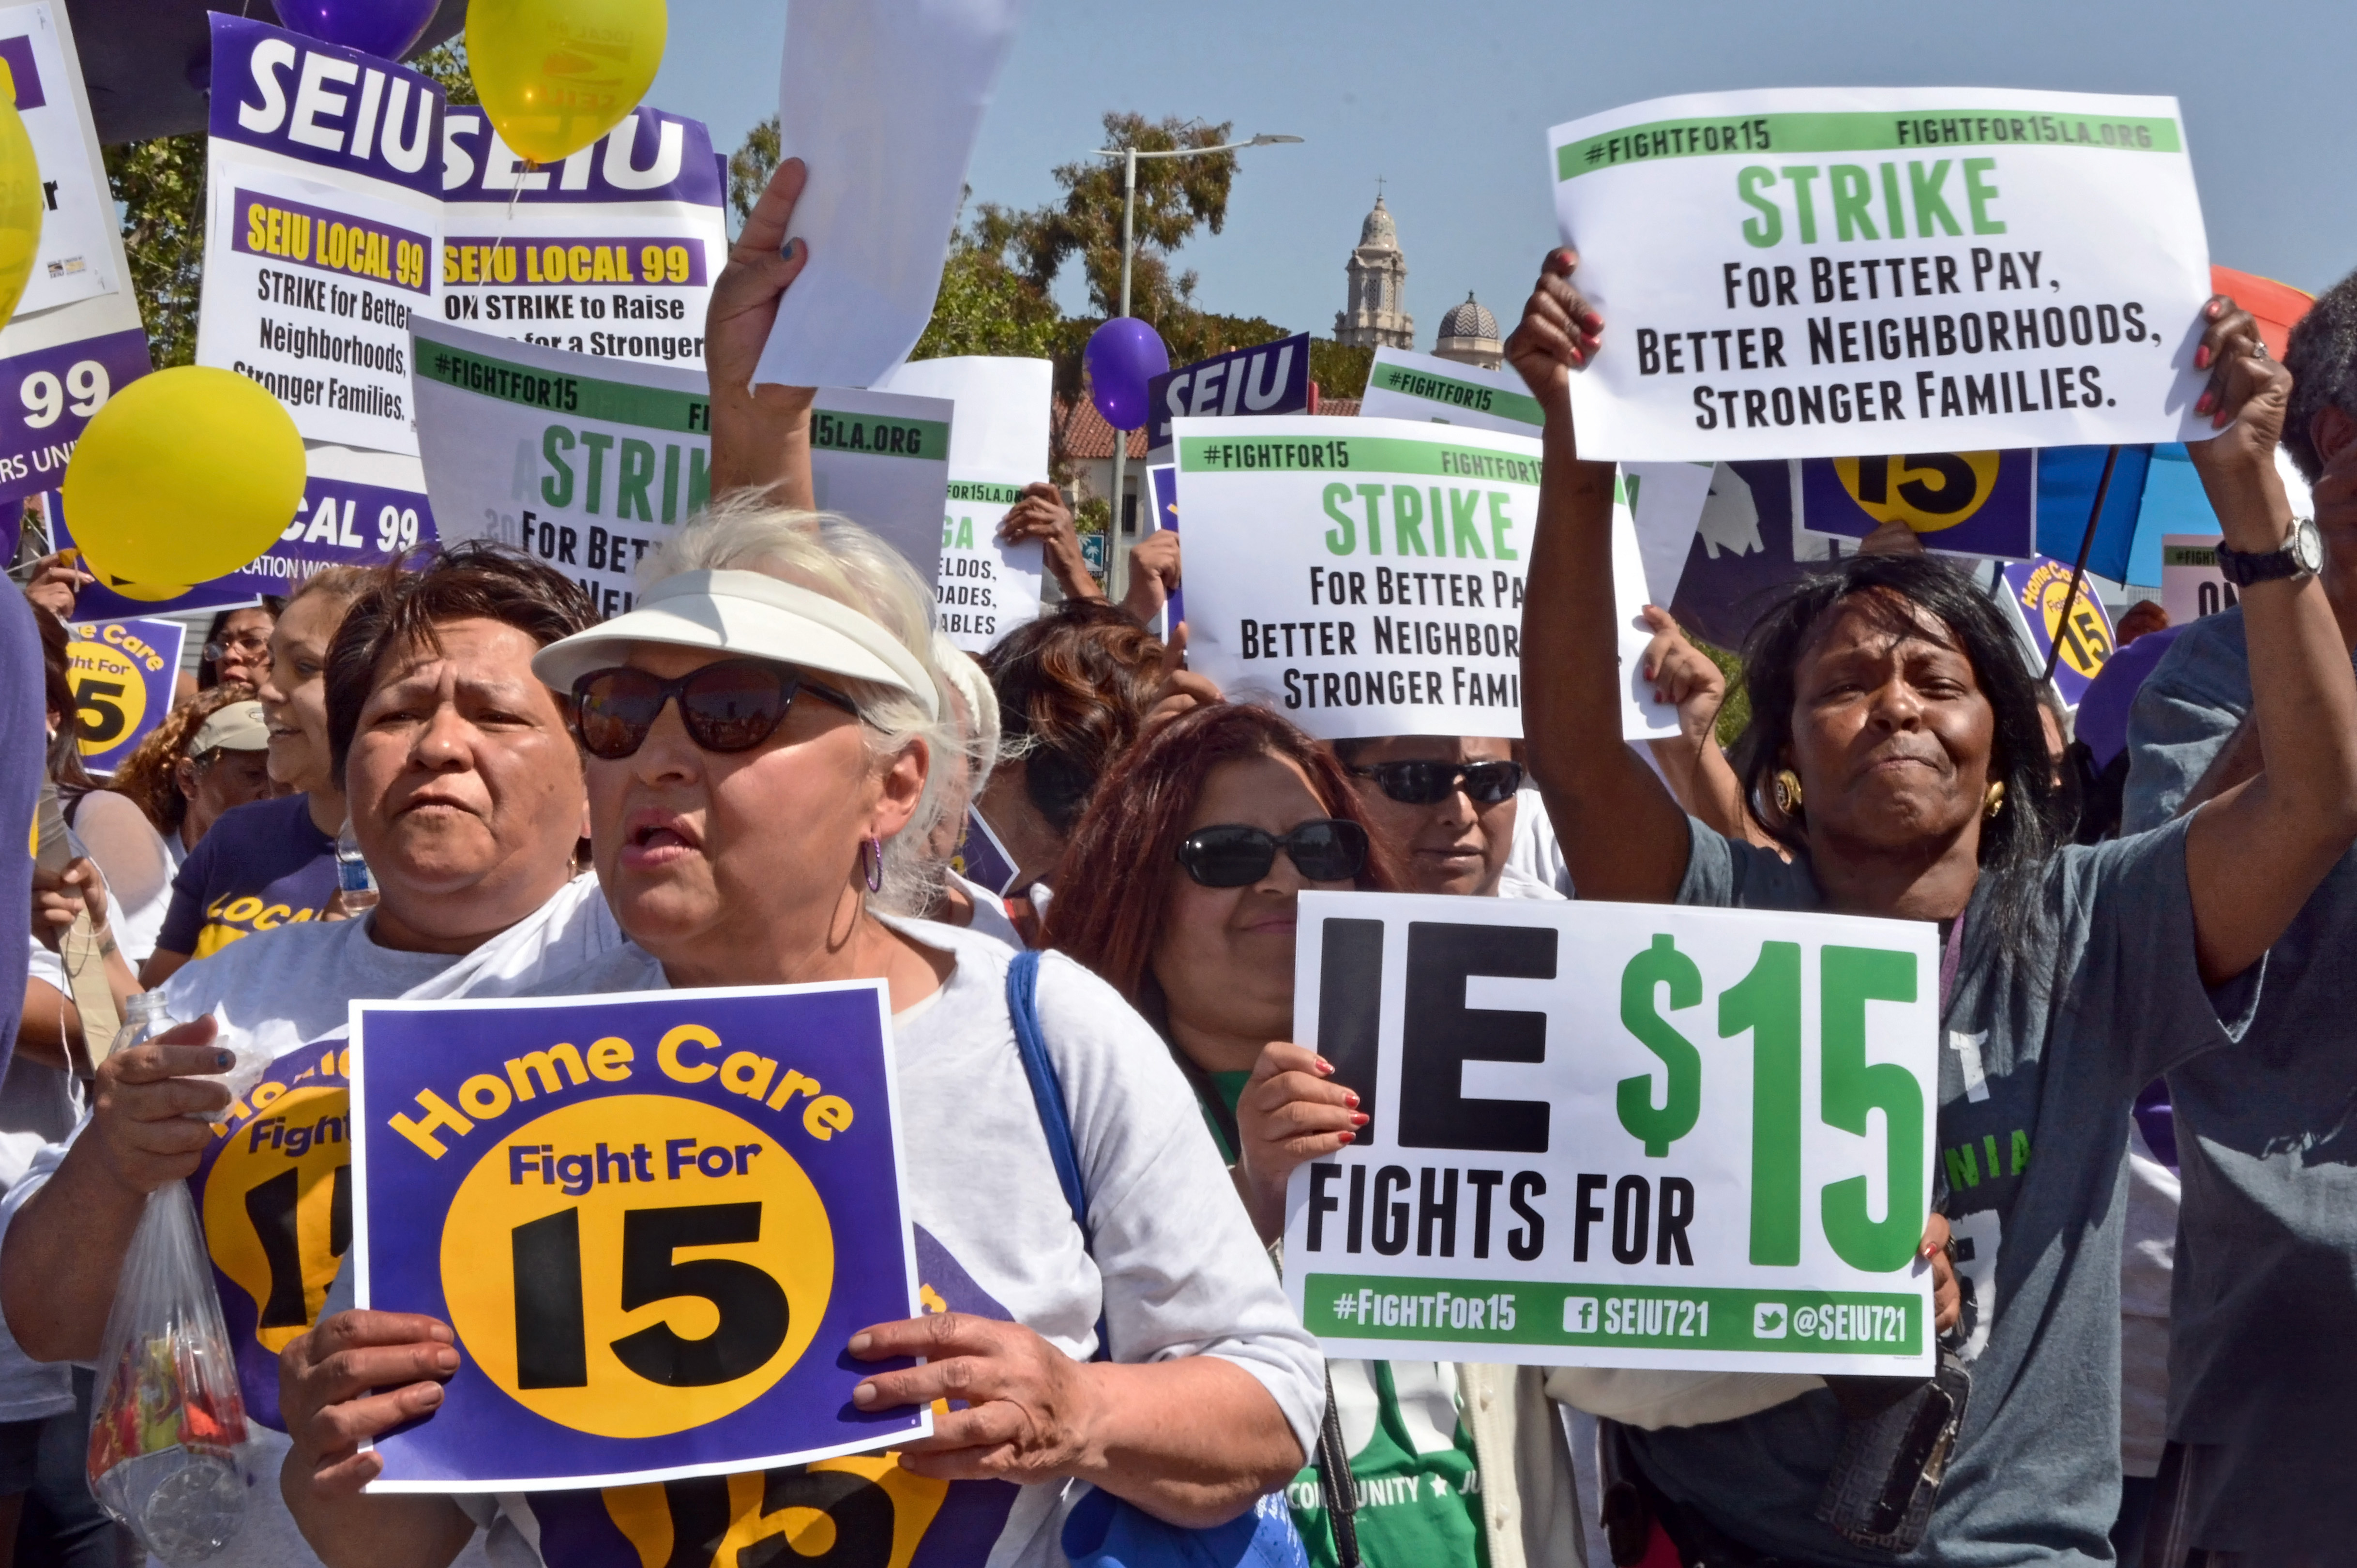 Protestors hold signs advocating raising the minimum wage at during a rally in Los Angeles on April 15, 2015.